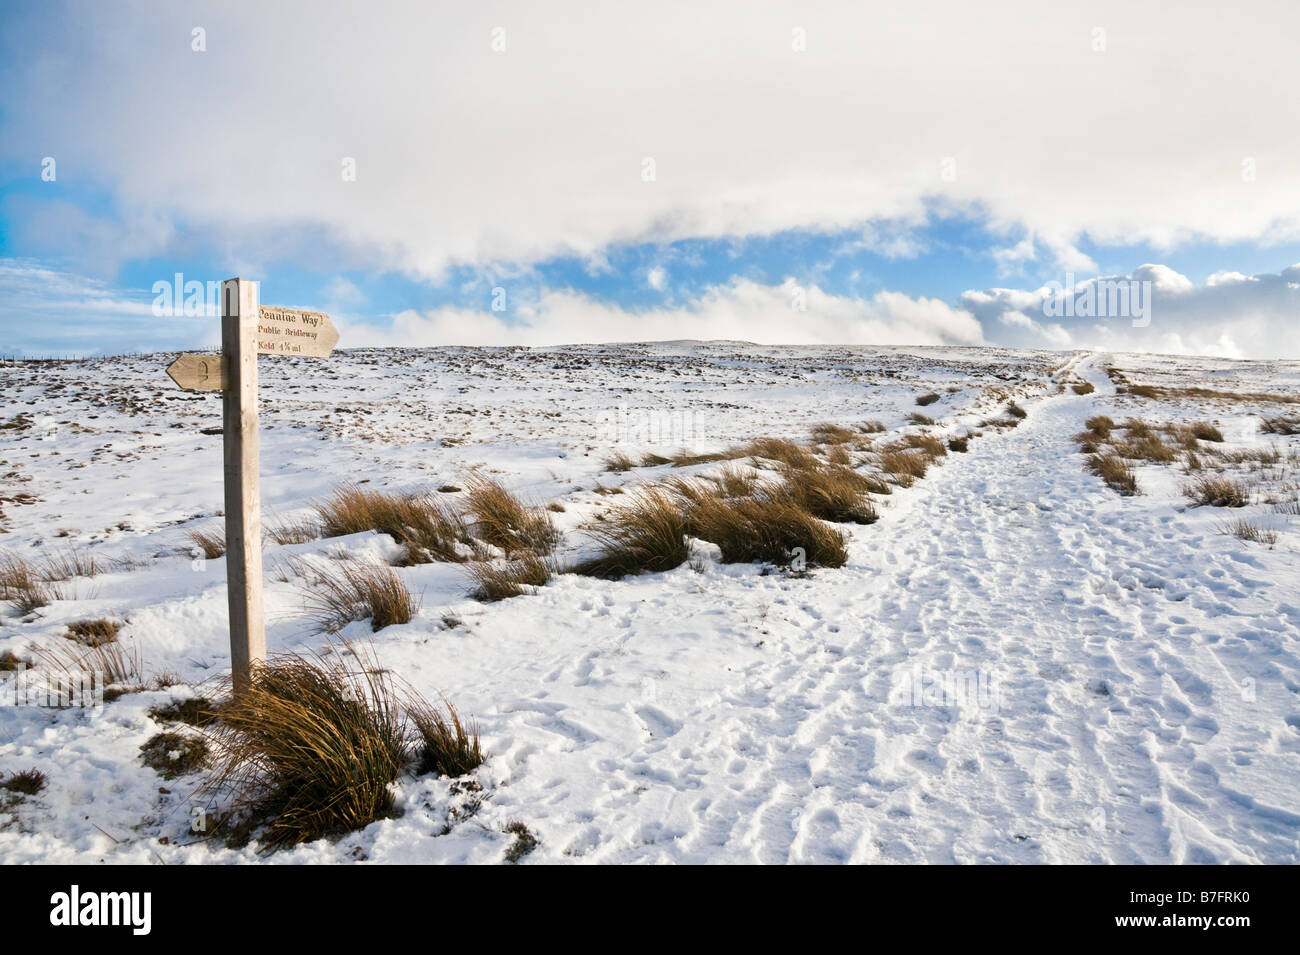 Pennine Way at the start of the section that links Tan Hill Inn with Keld in Swaledale. - Stock Image